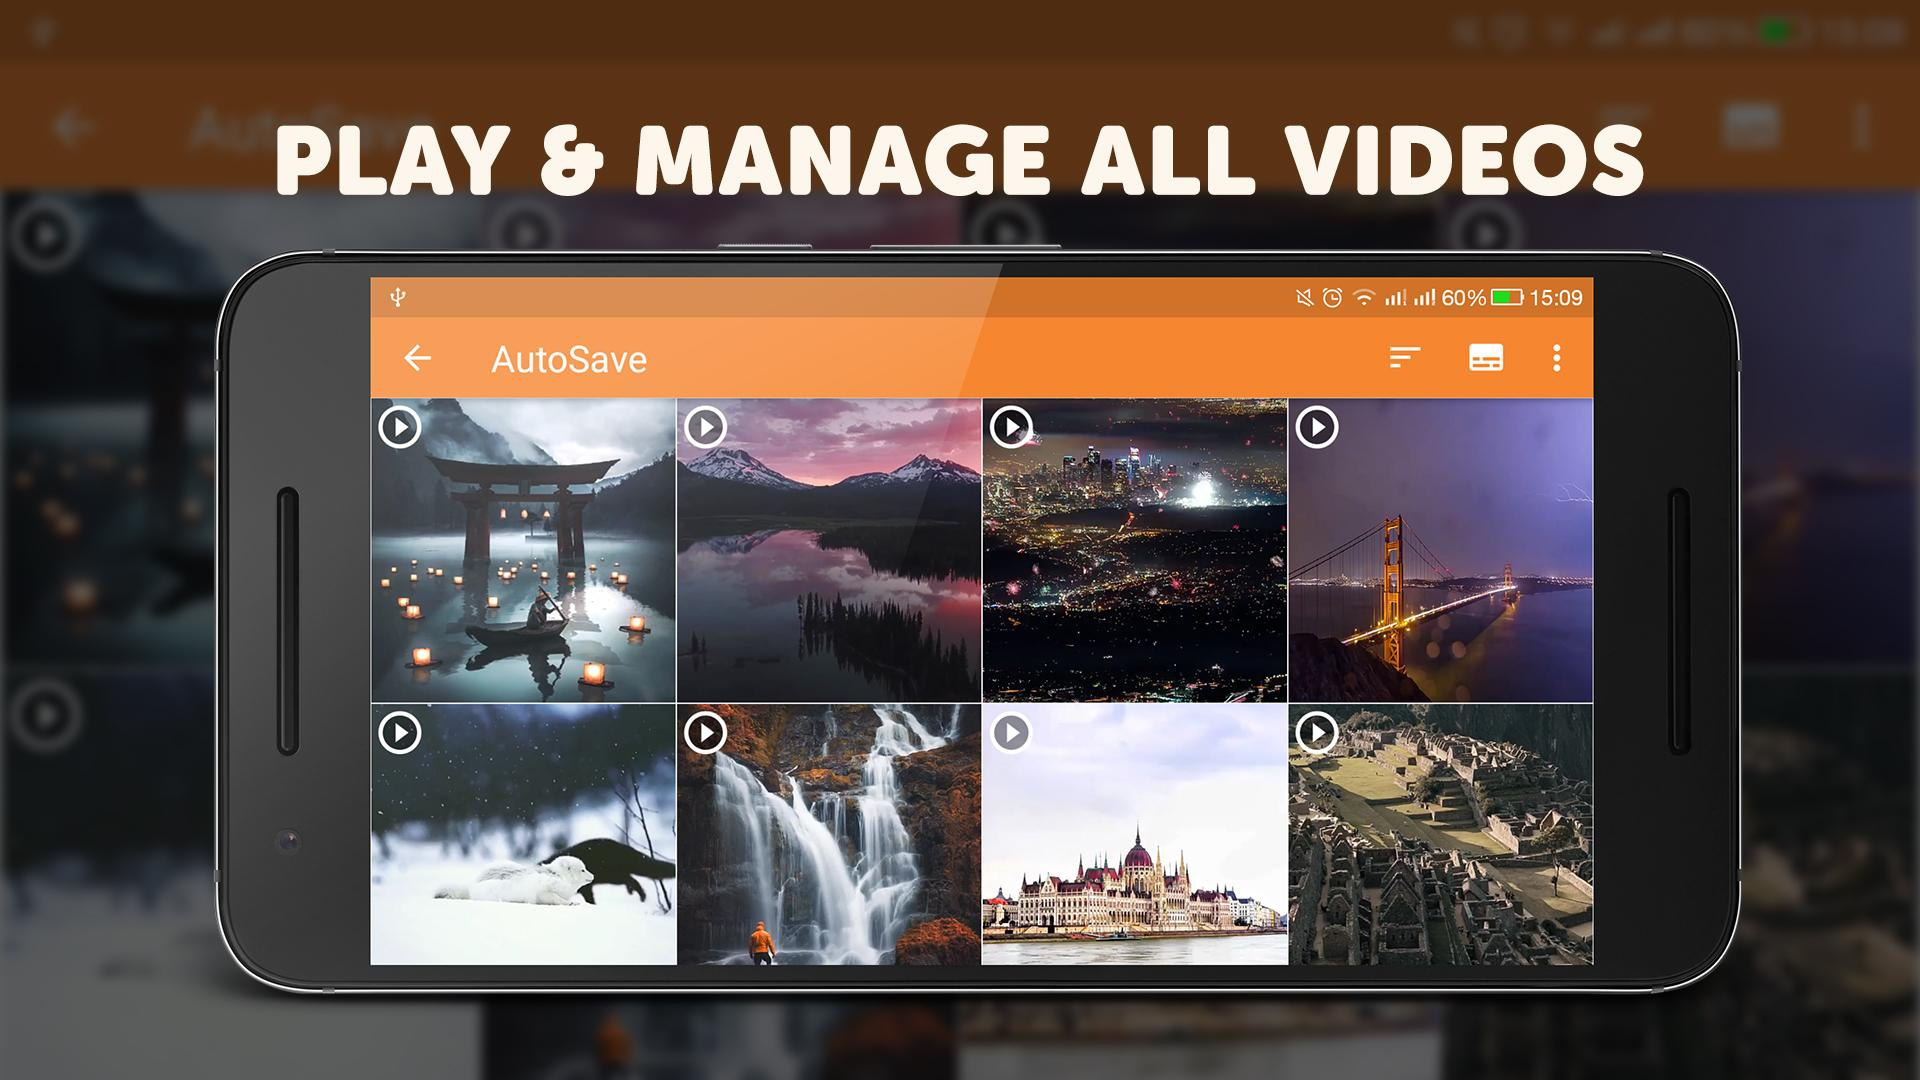 X Video Player - Video Player All Format 2020 APK 4.3 Download for Android – Download X Video